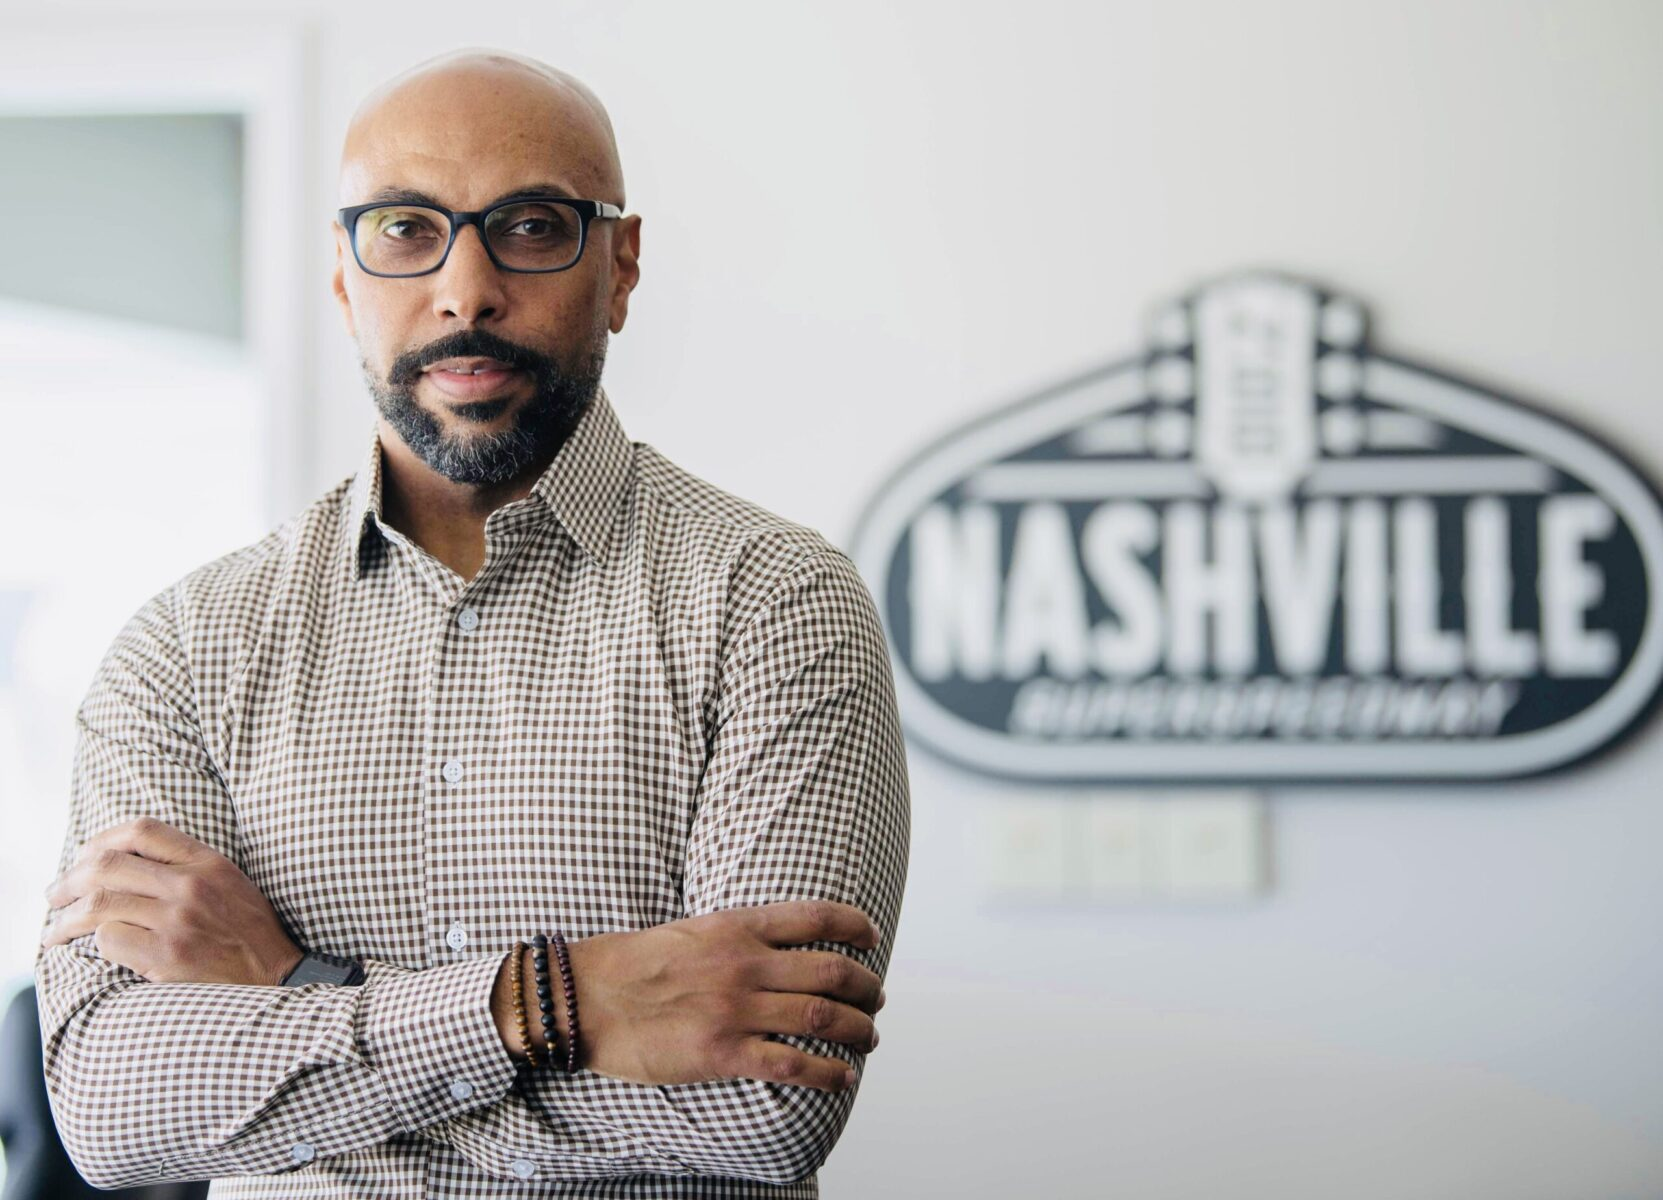 Erik Moses, NASCAR's first Black track president, on the importance of representation